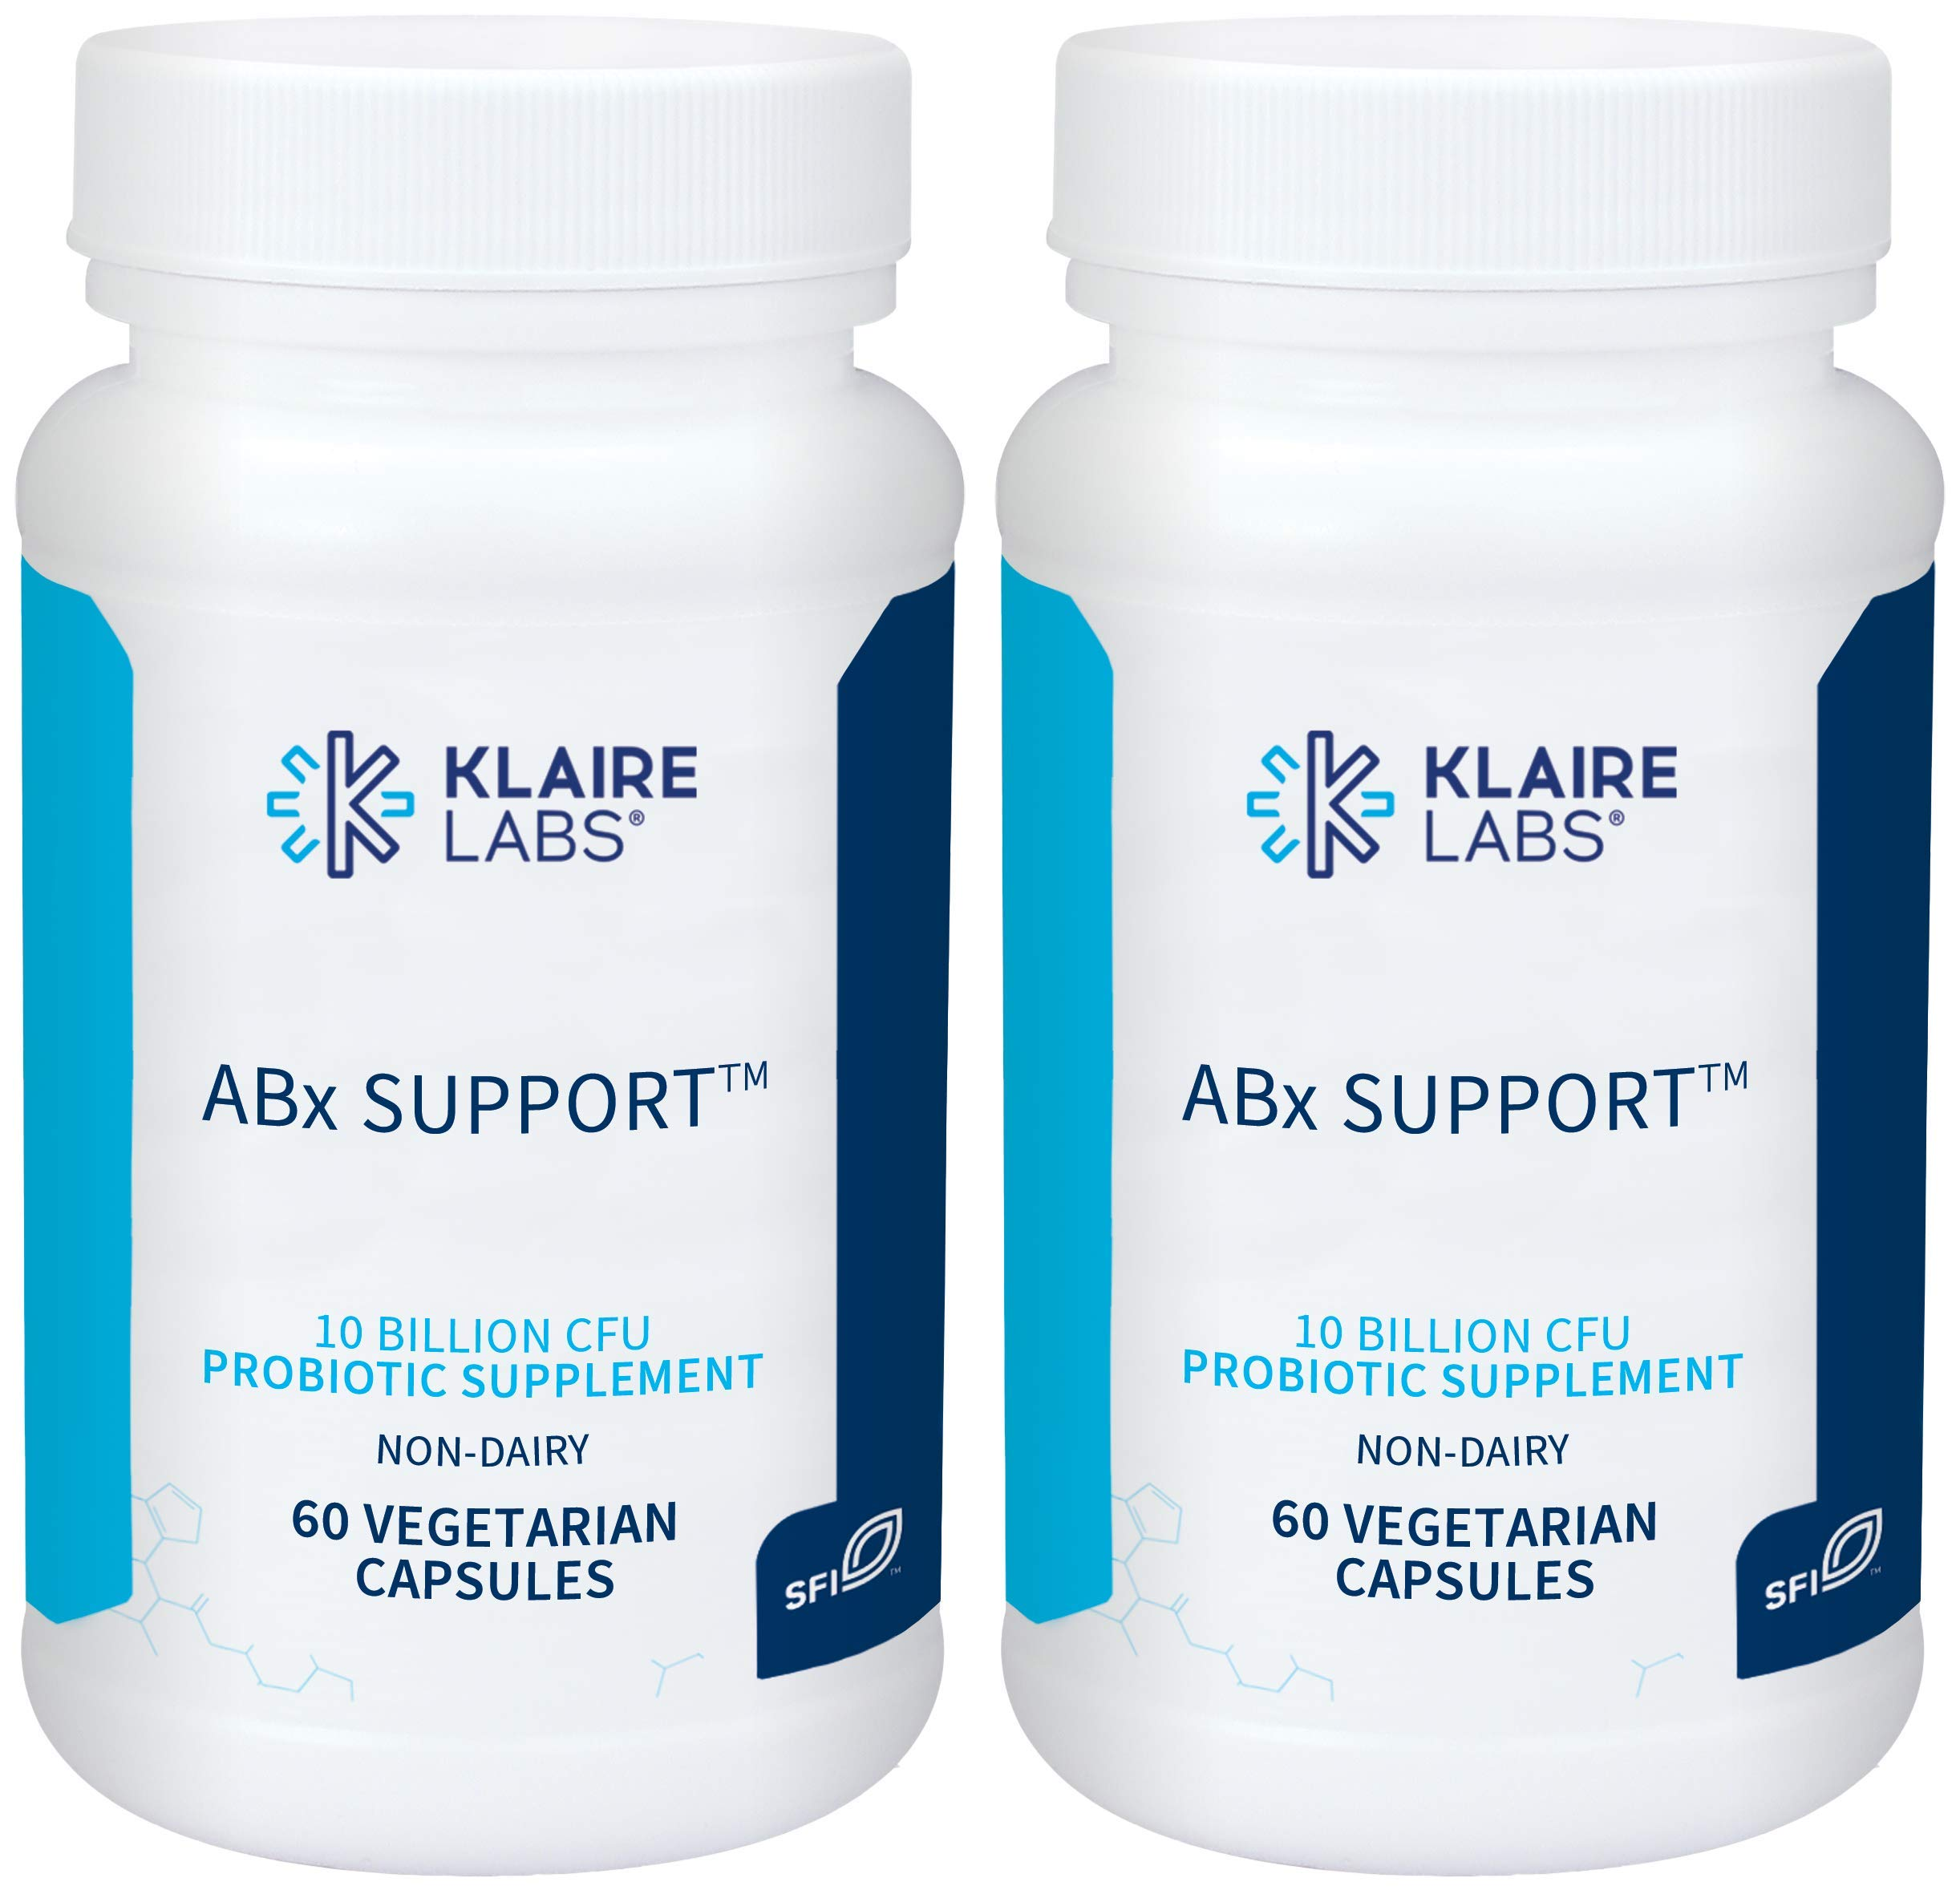 Klaire Labs ABX Support Probiotic - 10 Billion CFU Supplement for Support During Antibiotic Therapy, Hypoallergenic & Non-Dairy (60 Capsules / 2 Pack)